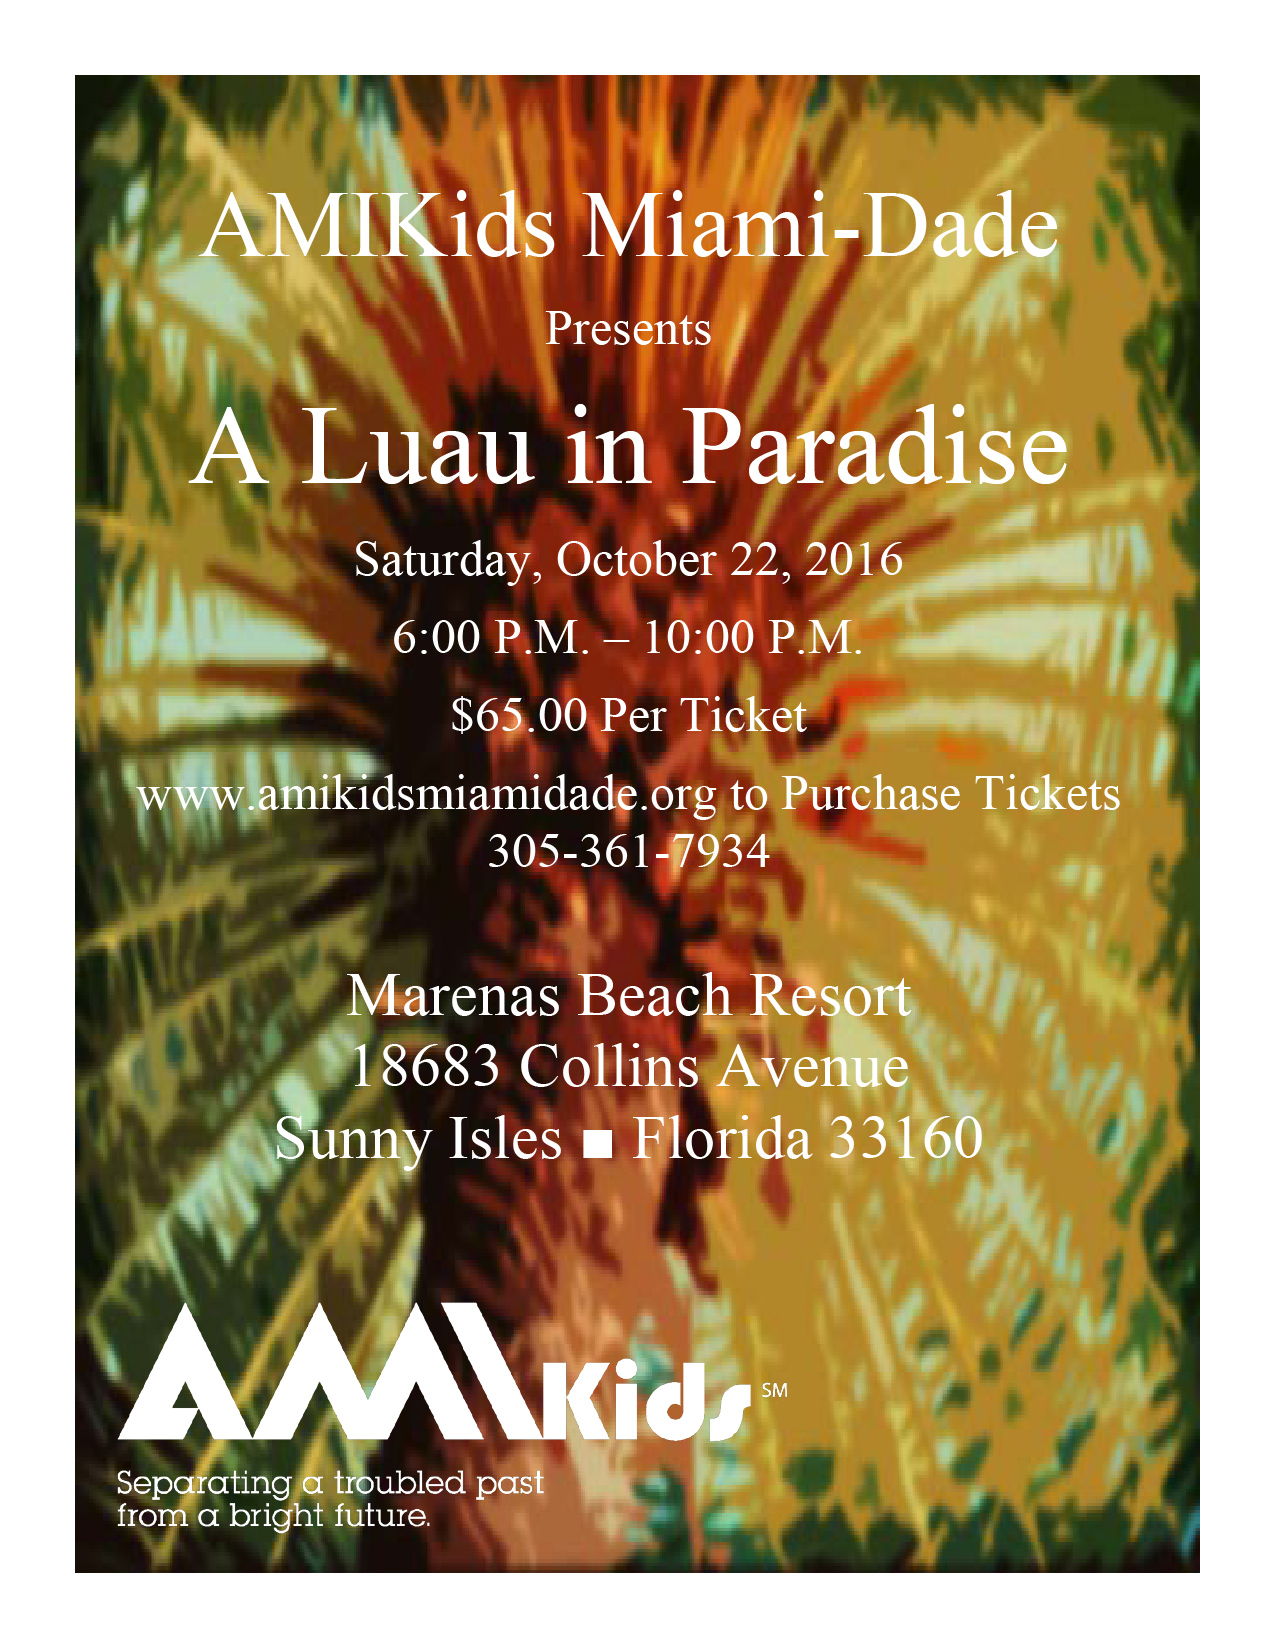 AMIkids Miami Dade South Luau in Paradise